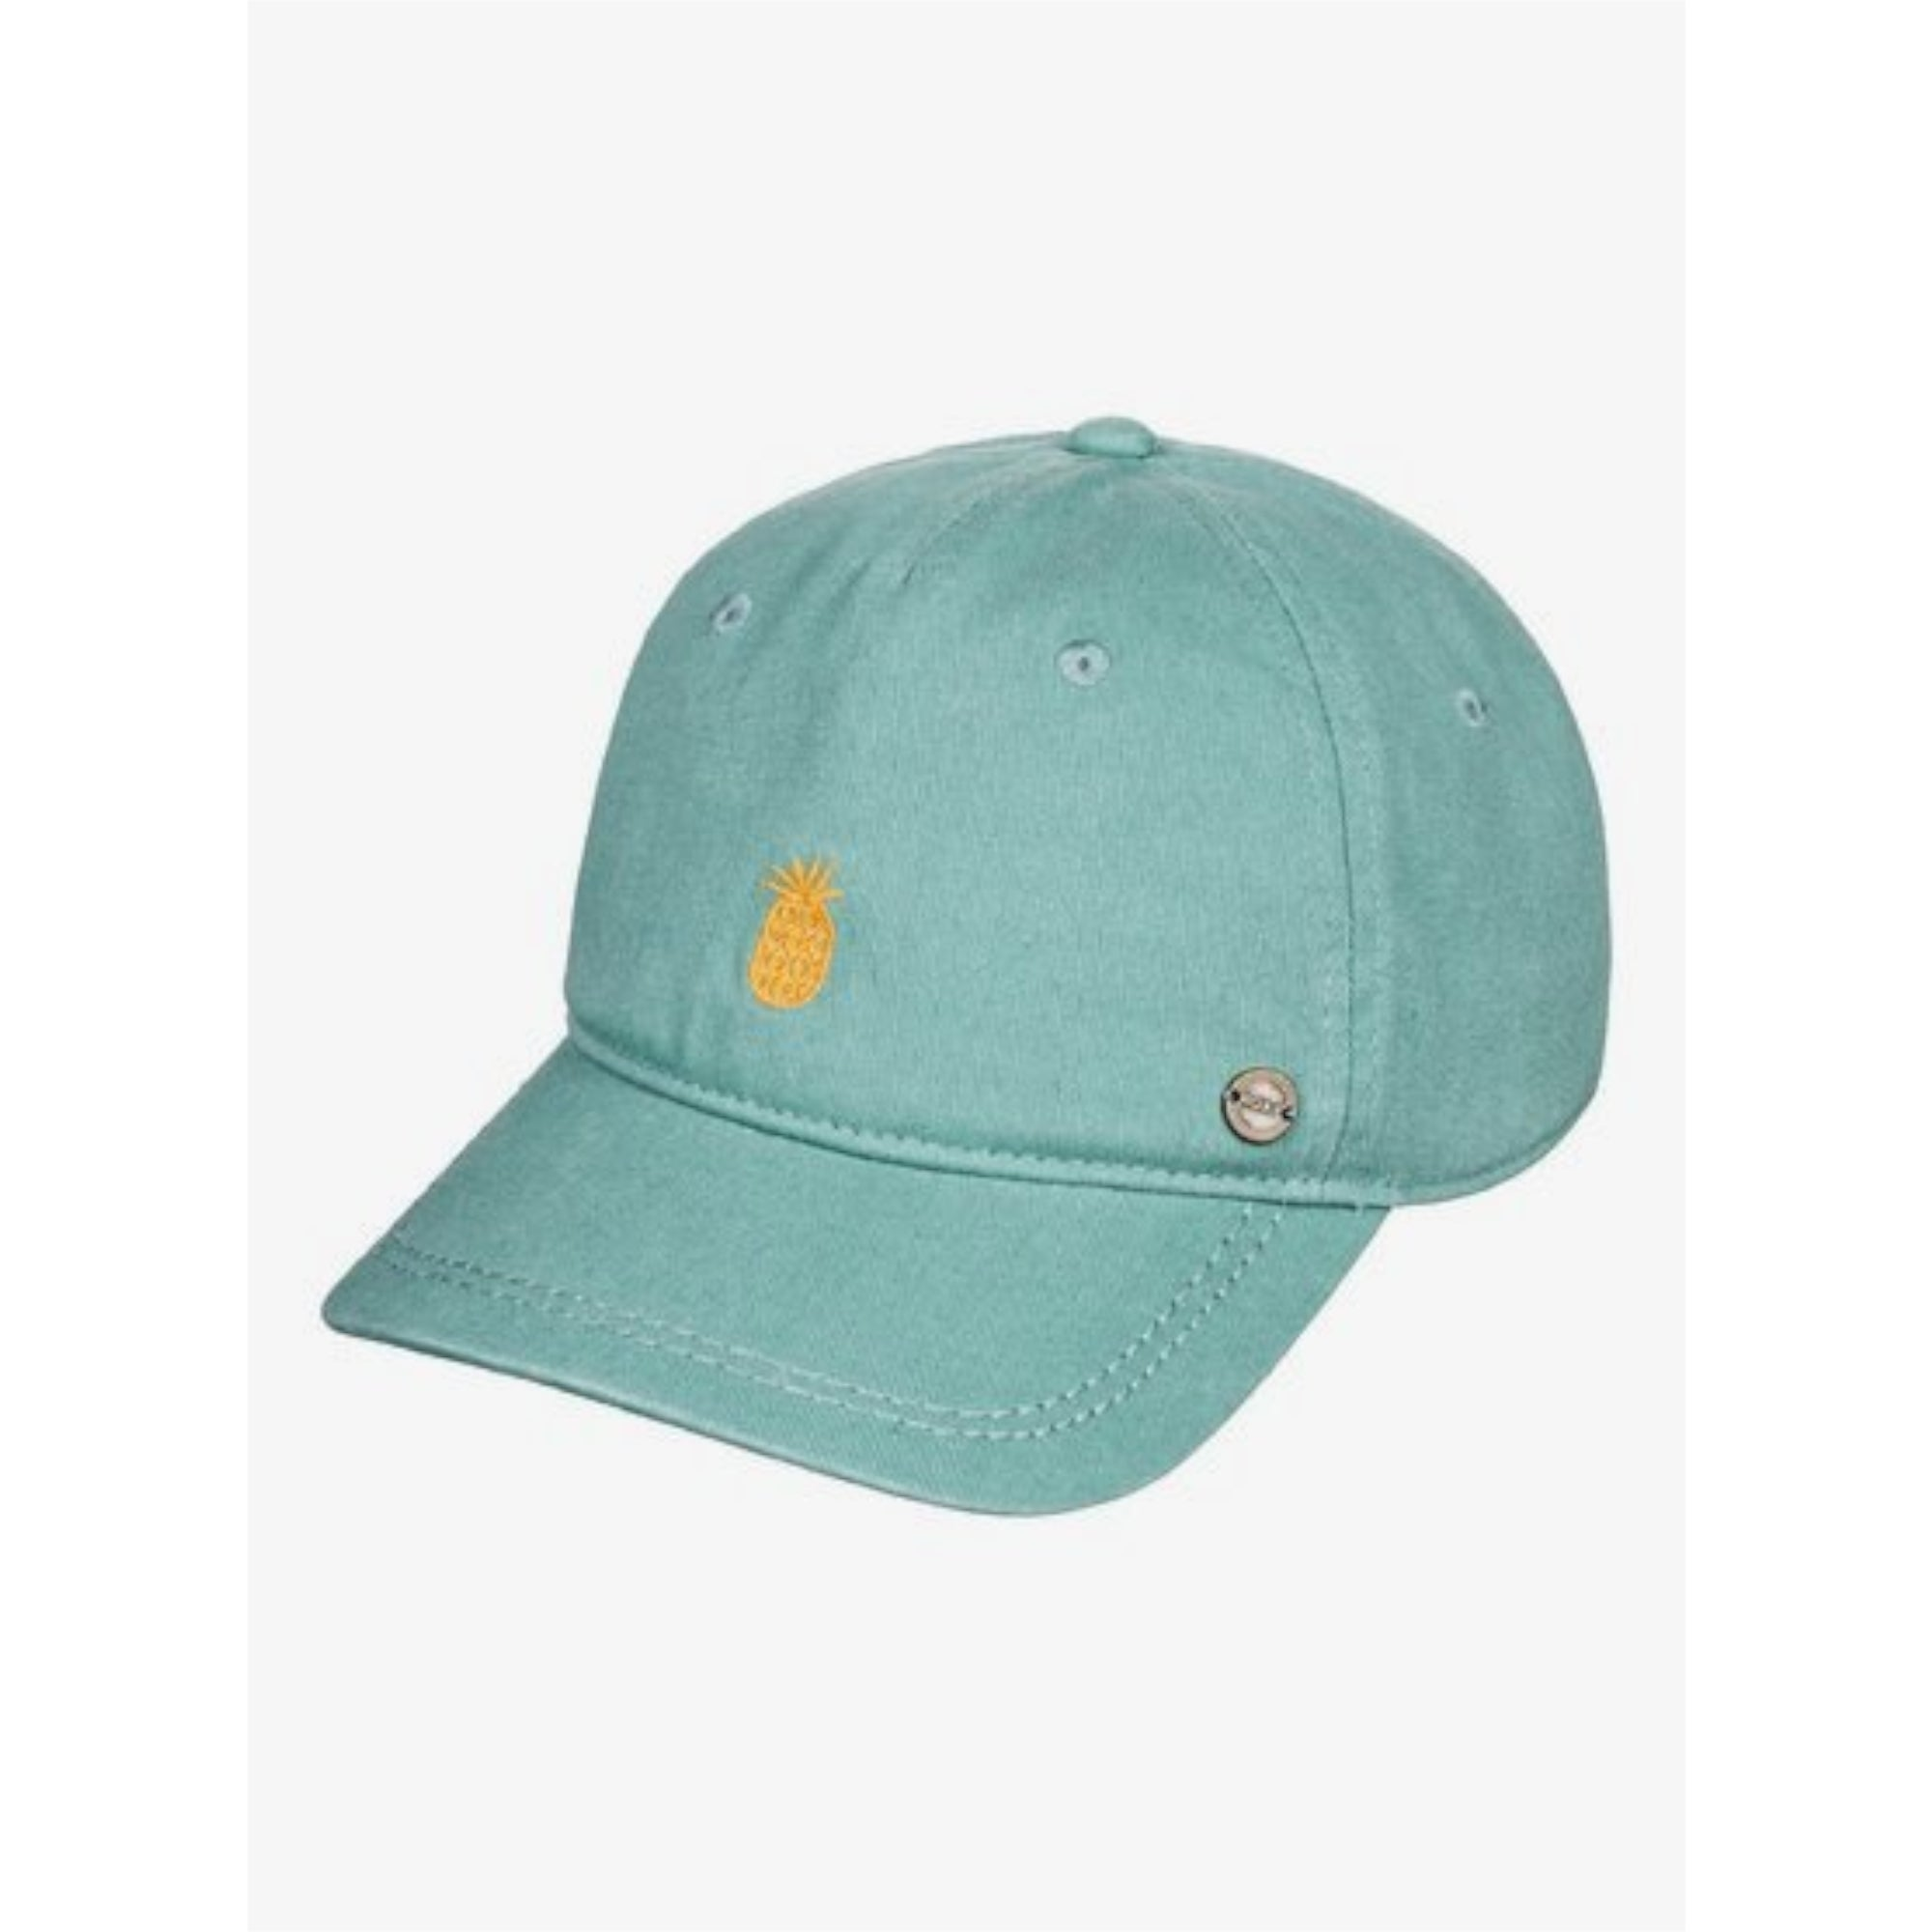 Roxy Next Level Women's Baseball Cap - Oil Blue